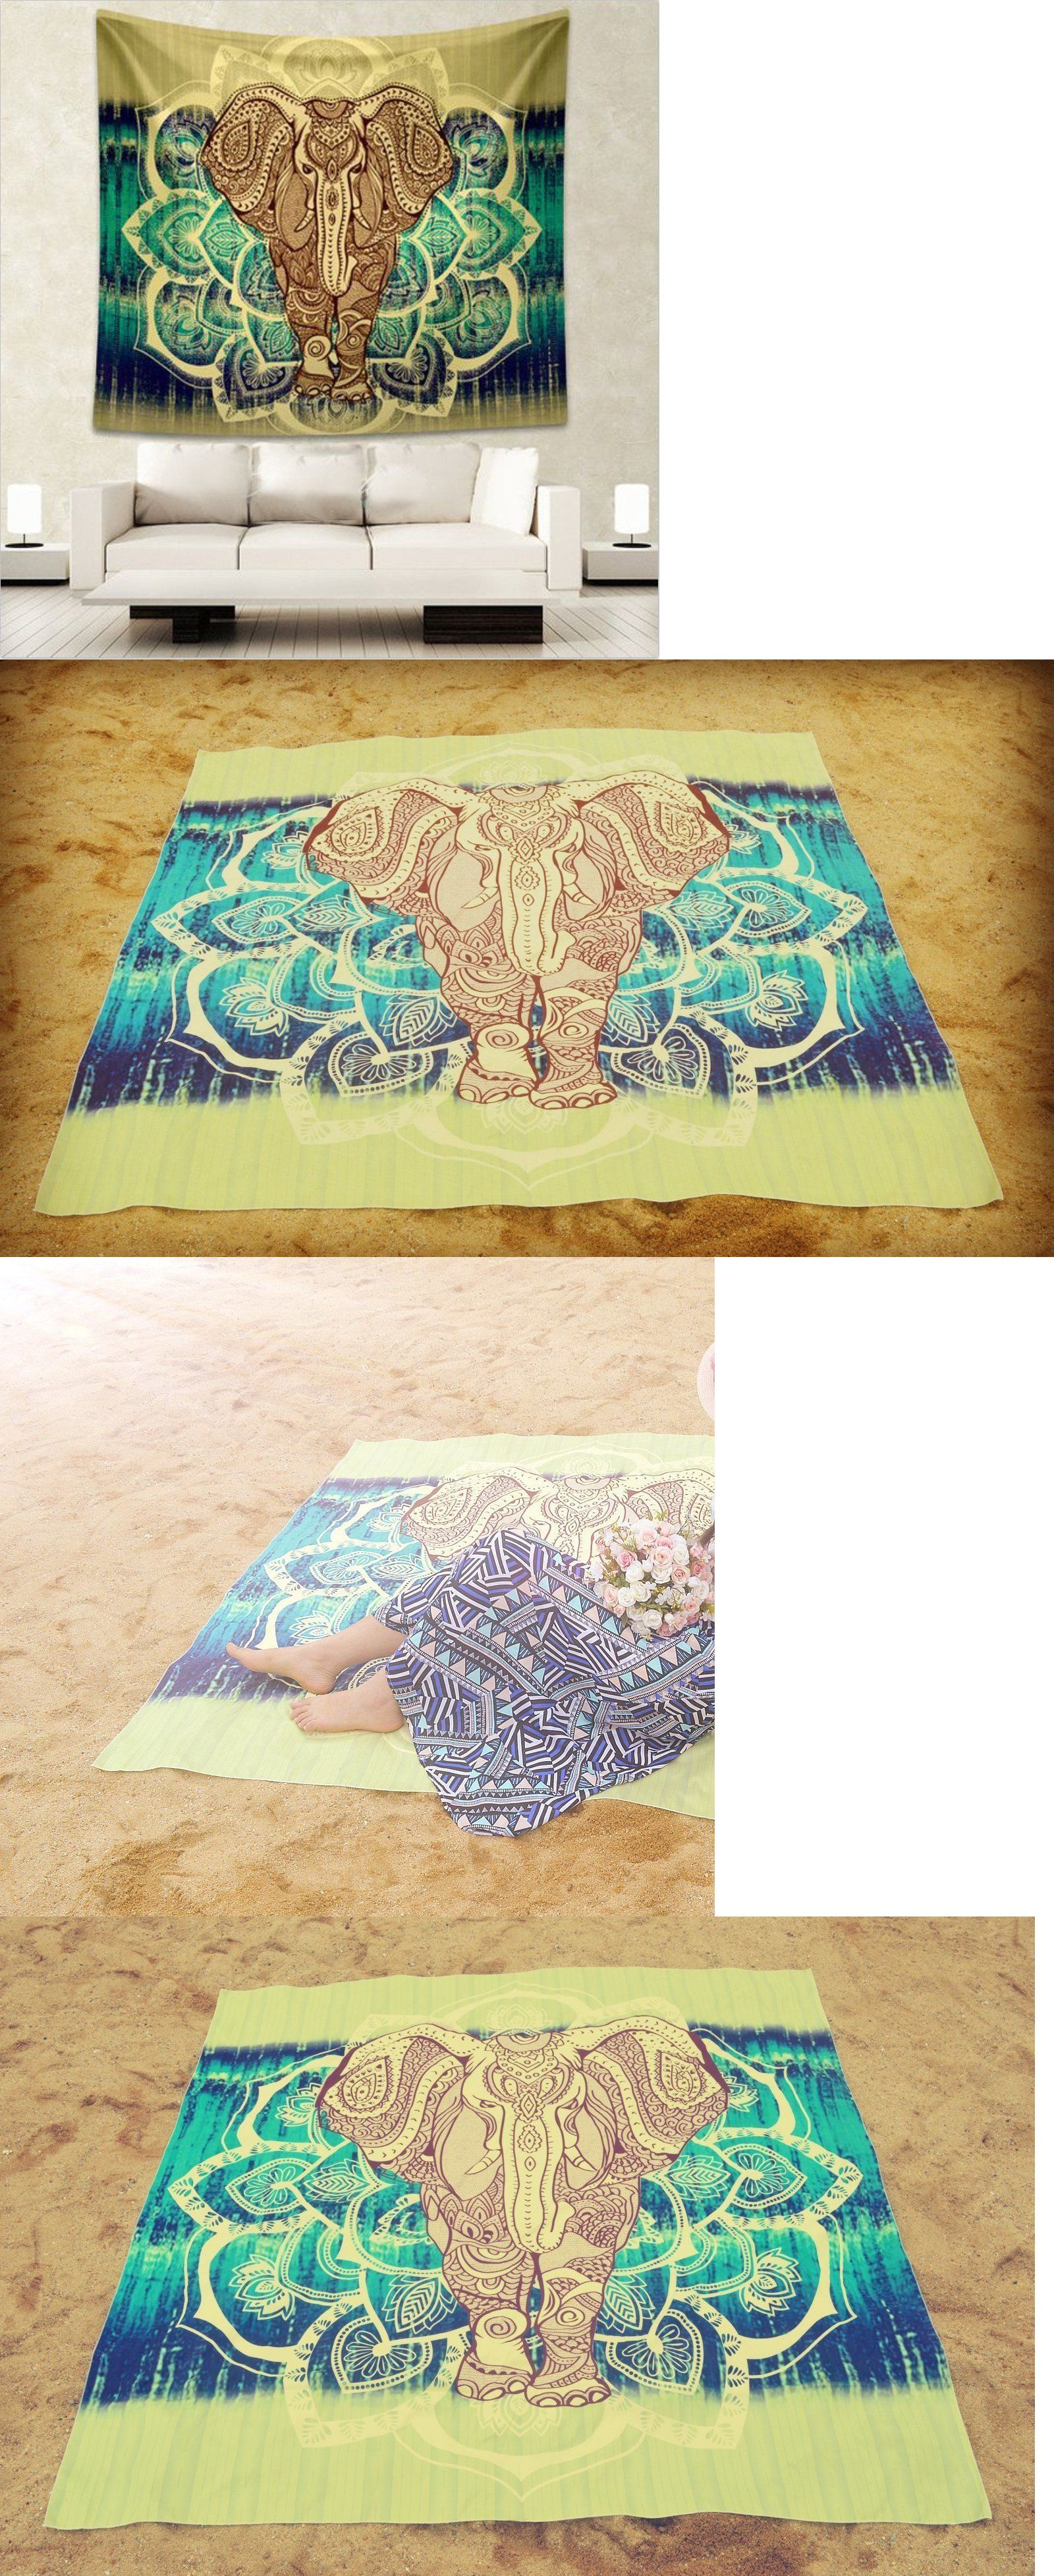 Tapestries 38237: Indian Wall Hanging Hippie Mandala Tapestry ...